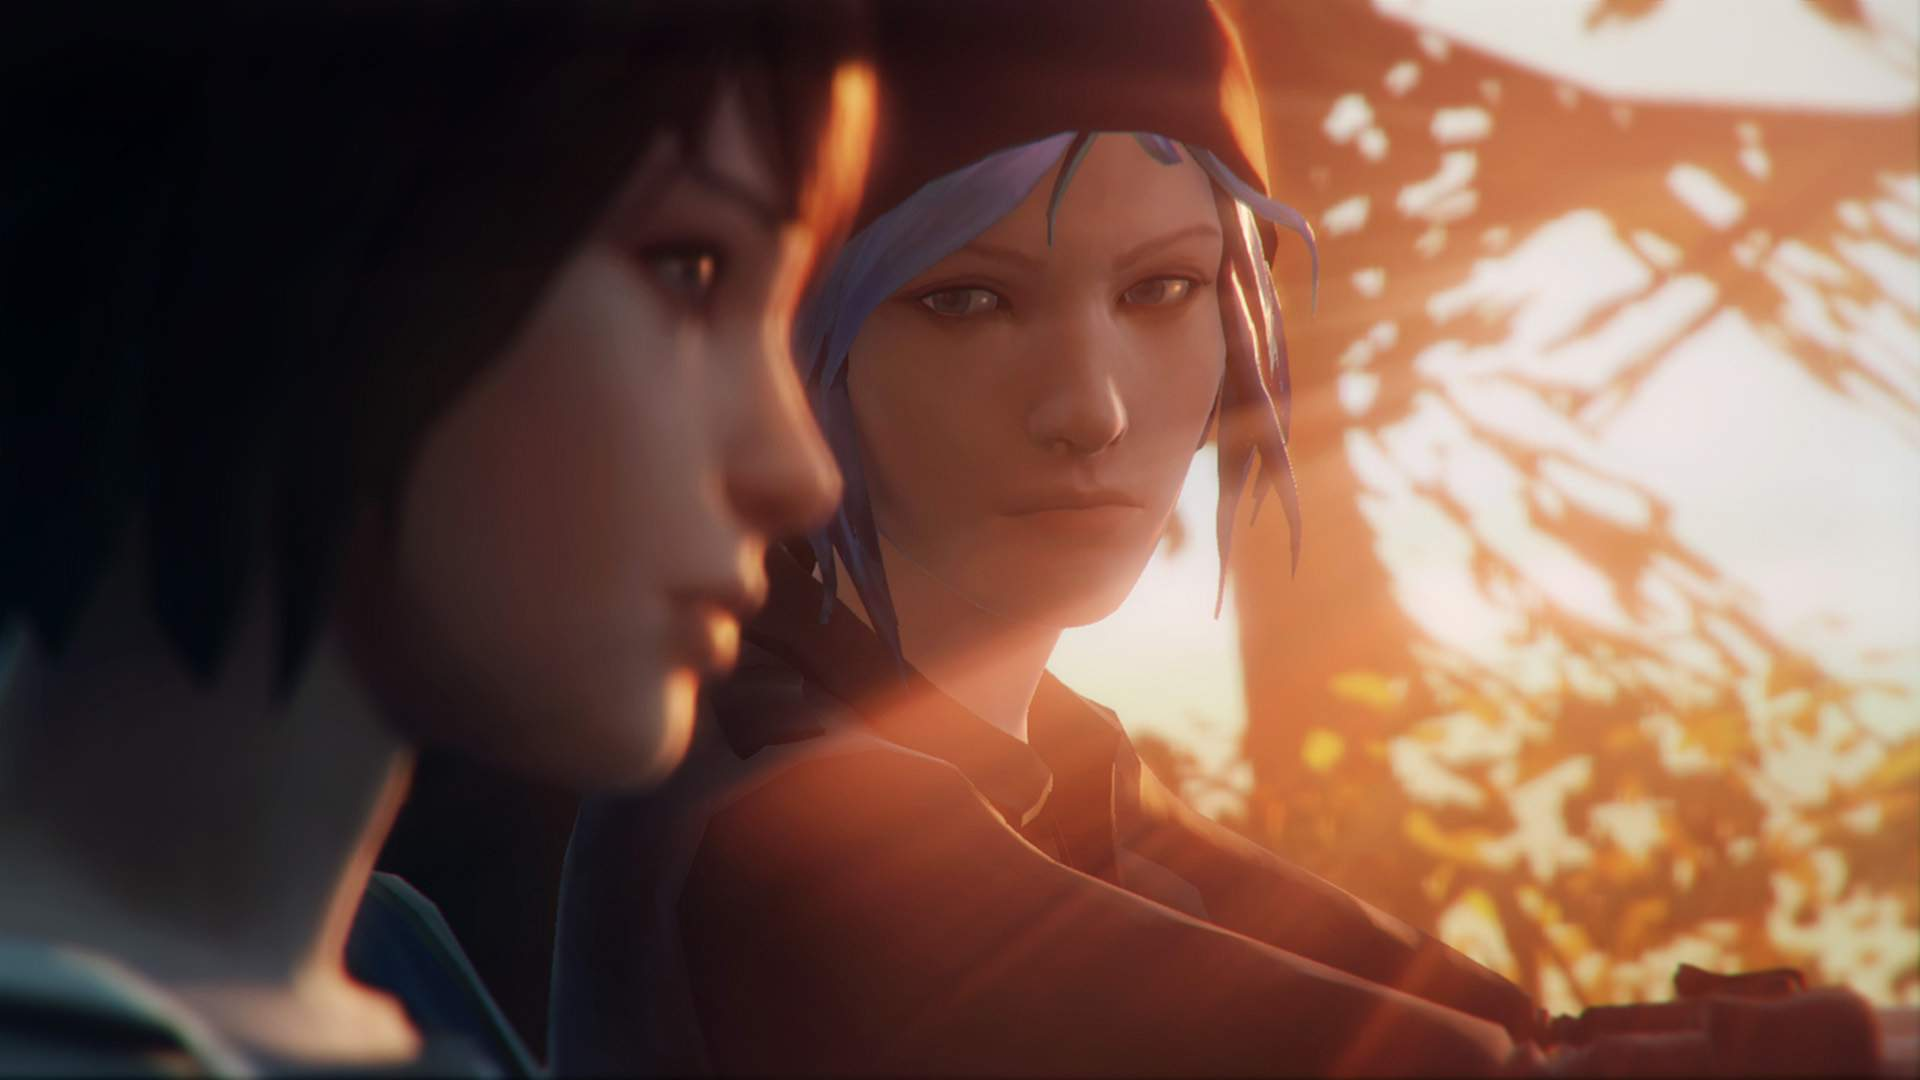 A close-up of Max and Chloe in Chloe's truck, as they drive, lit by golden sunlight. Chloe has an accusatory look.